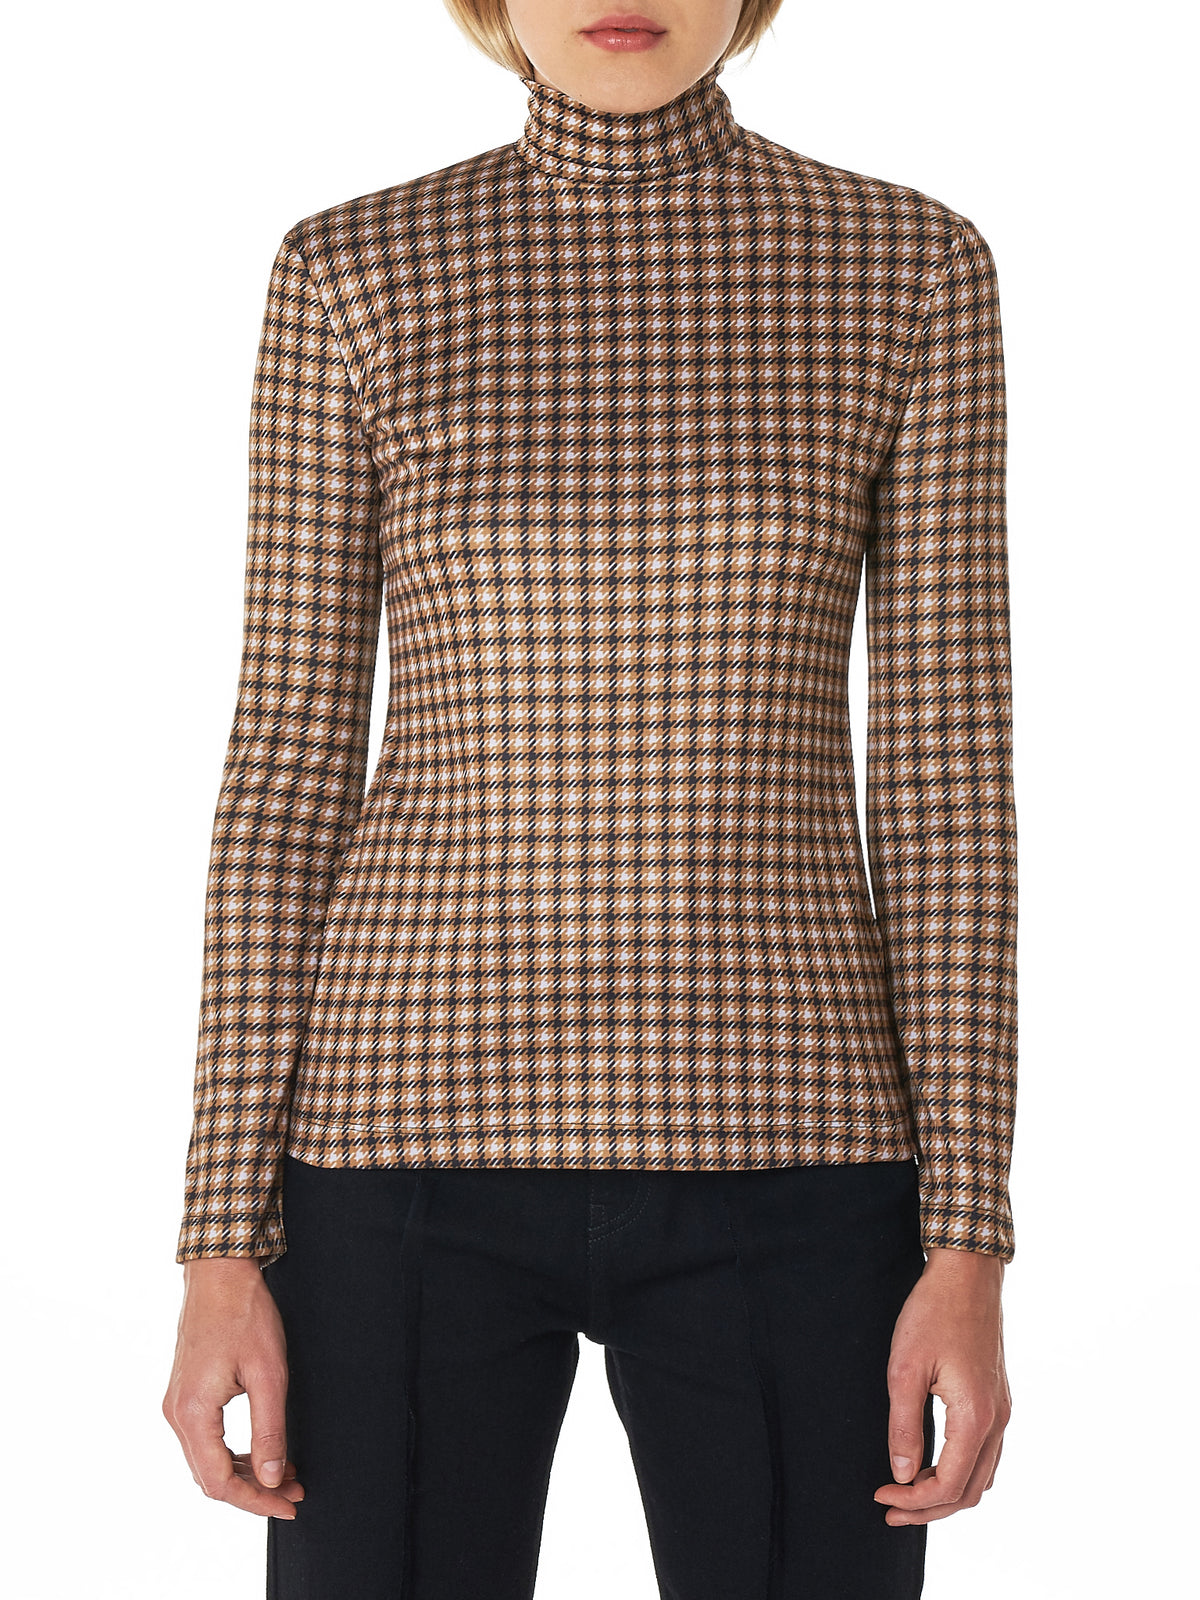 Houndstooth 'Mask' Top (R0CA40-V-PLAID)